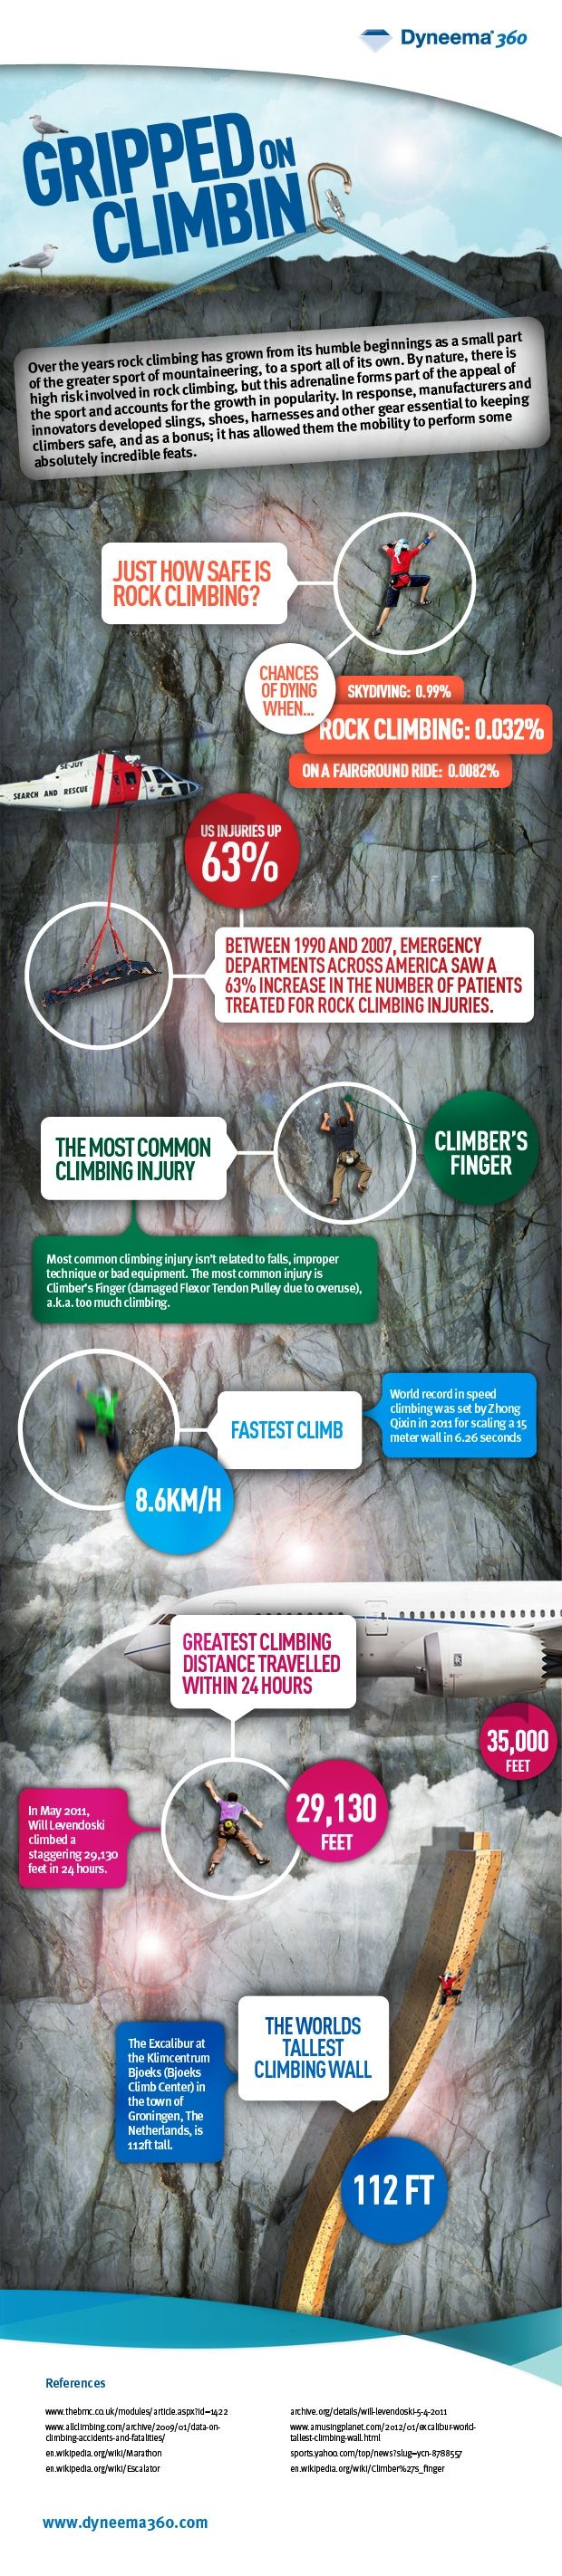 Gripped on Climbing: How Safe is Rock Climbing [INFOGRAPHIC]